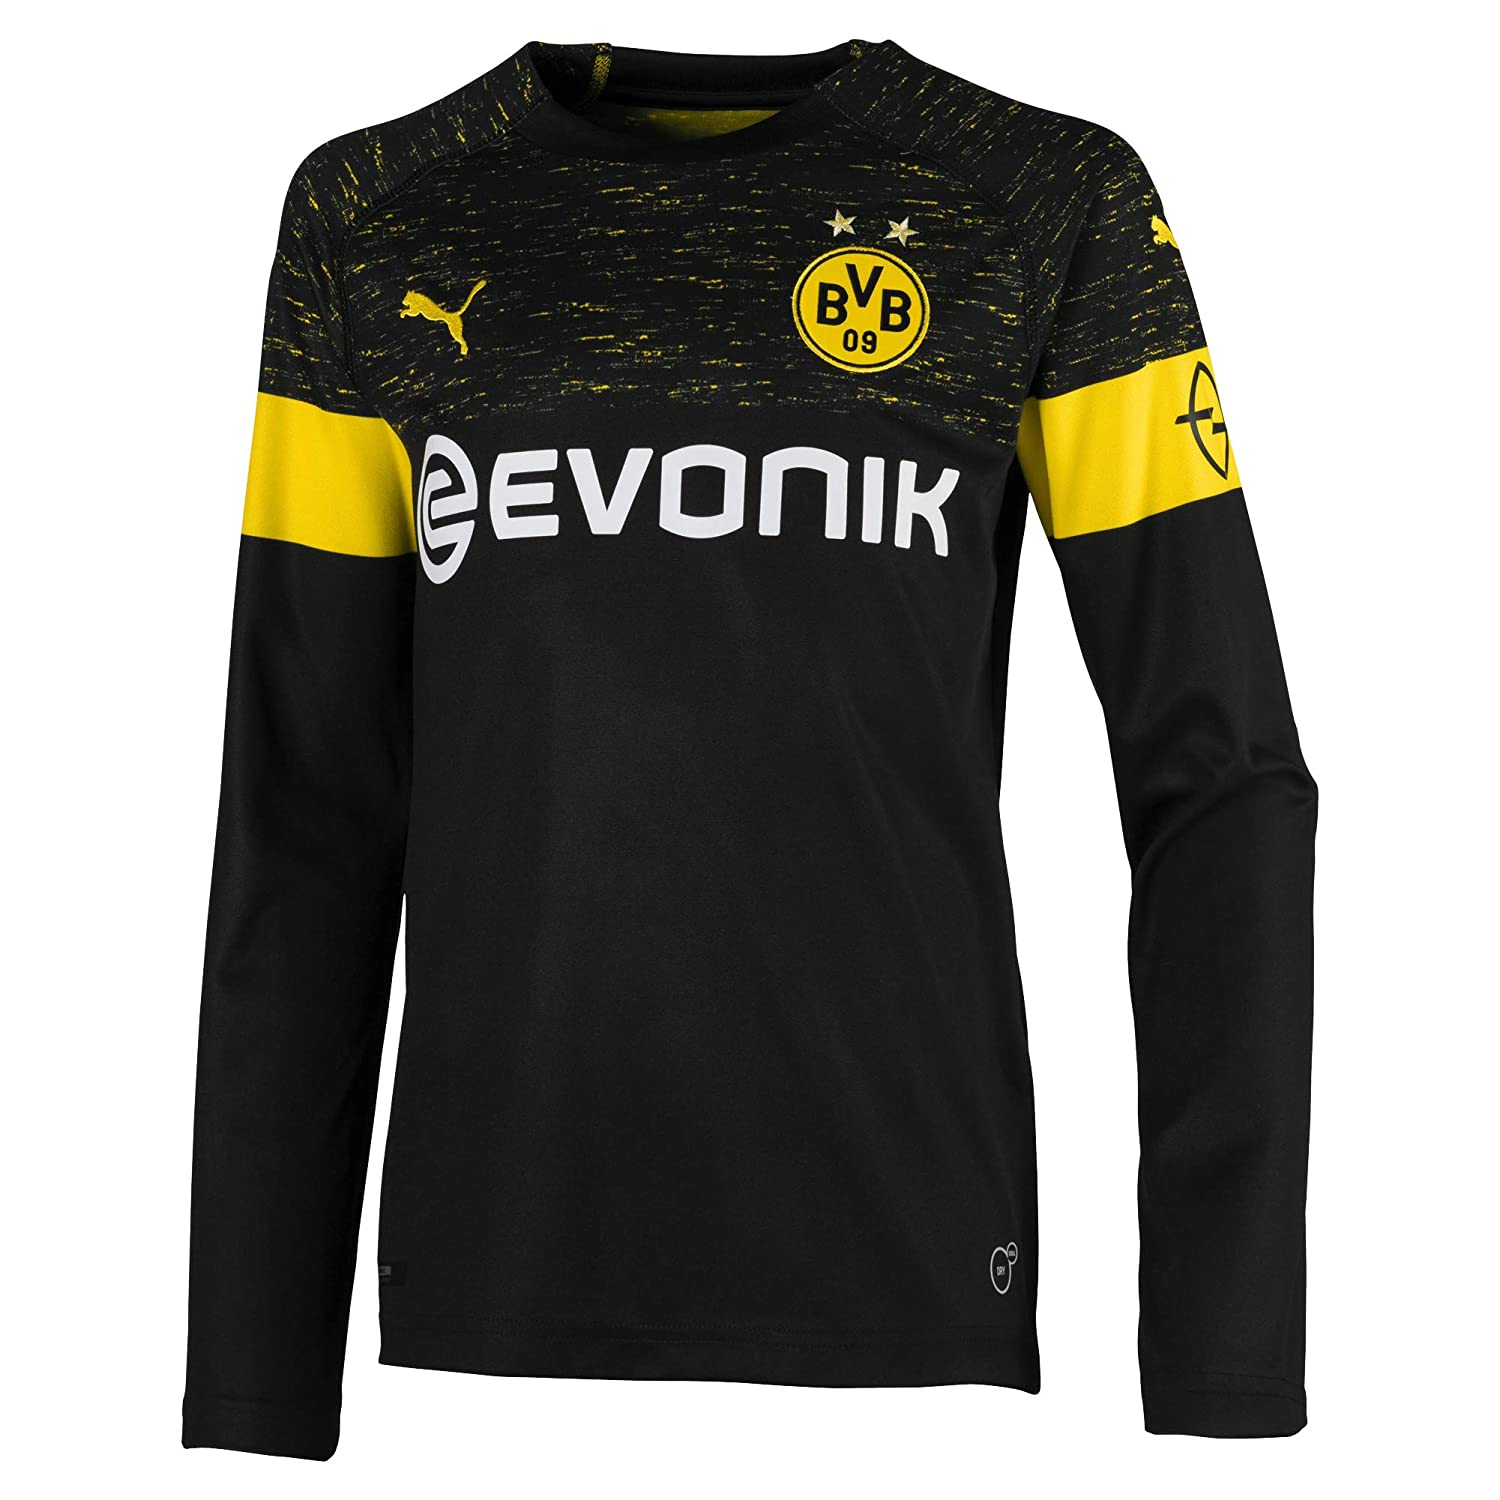 Puma Kinder BVB Ls Away Shirt Replica Jr Evonik with Opel Logo Trikot